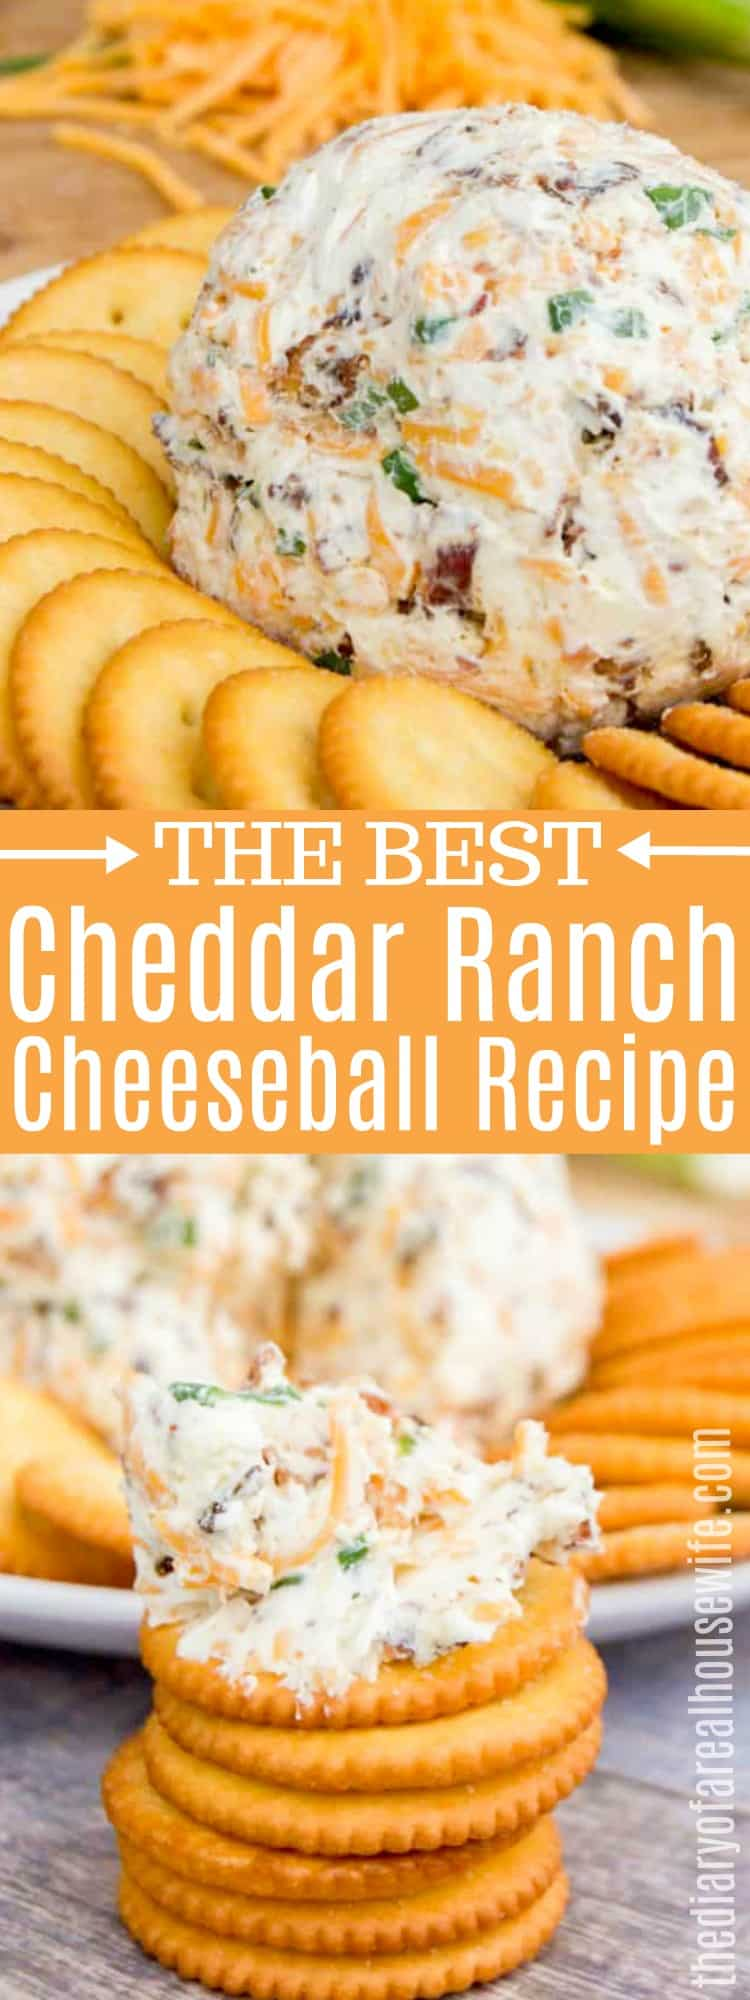 Cheddar Ranch Cheeseball